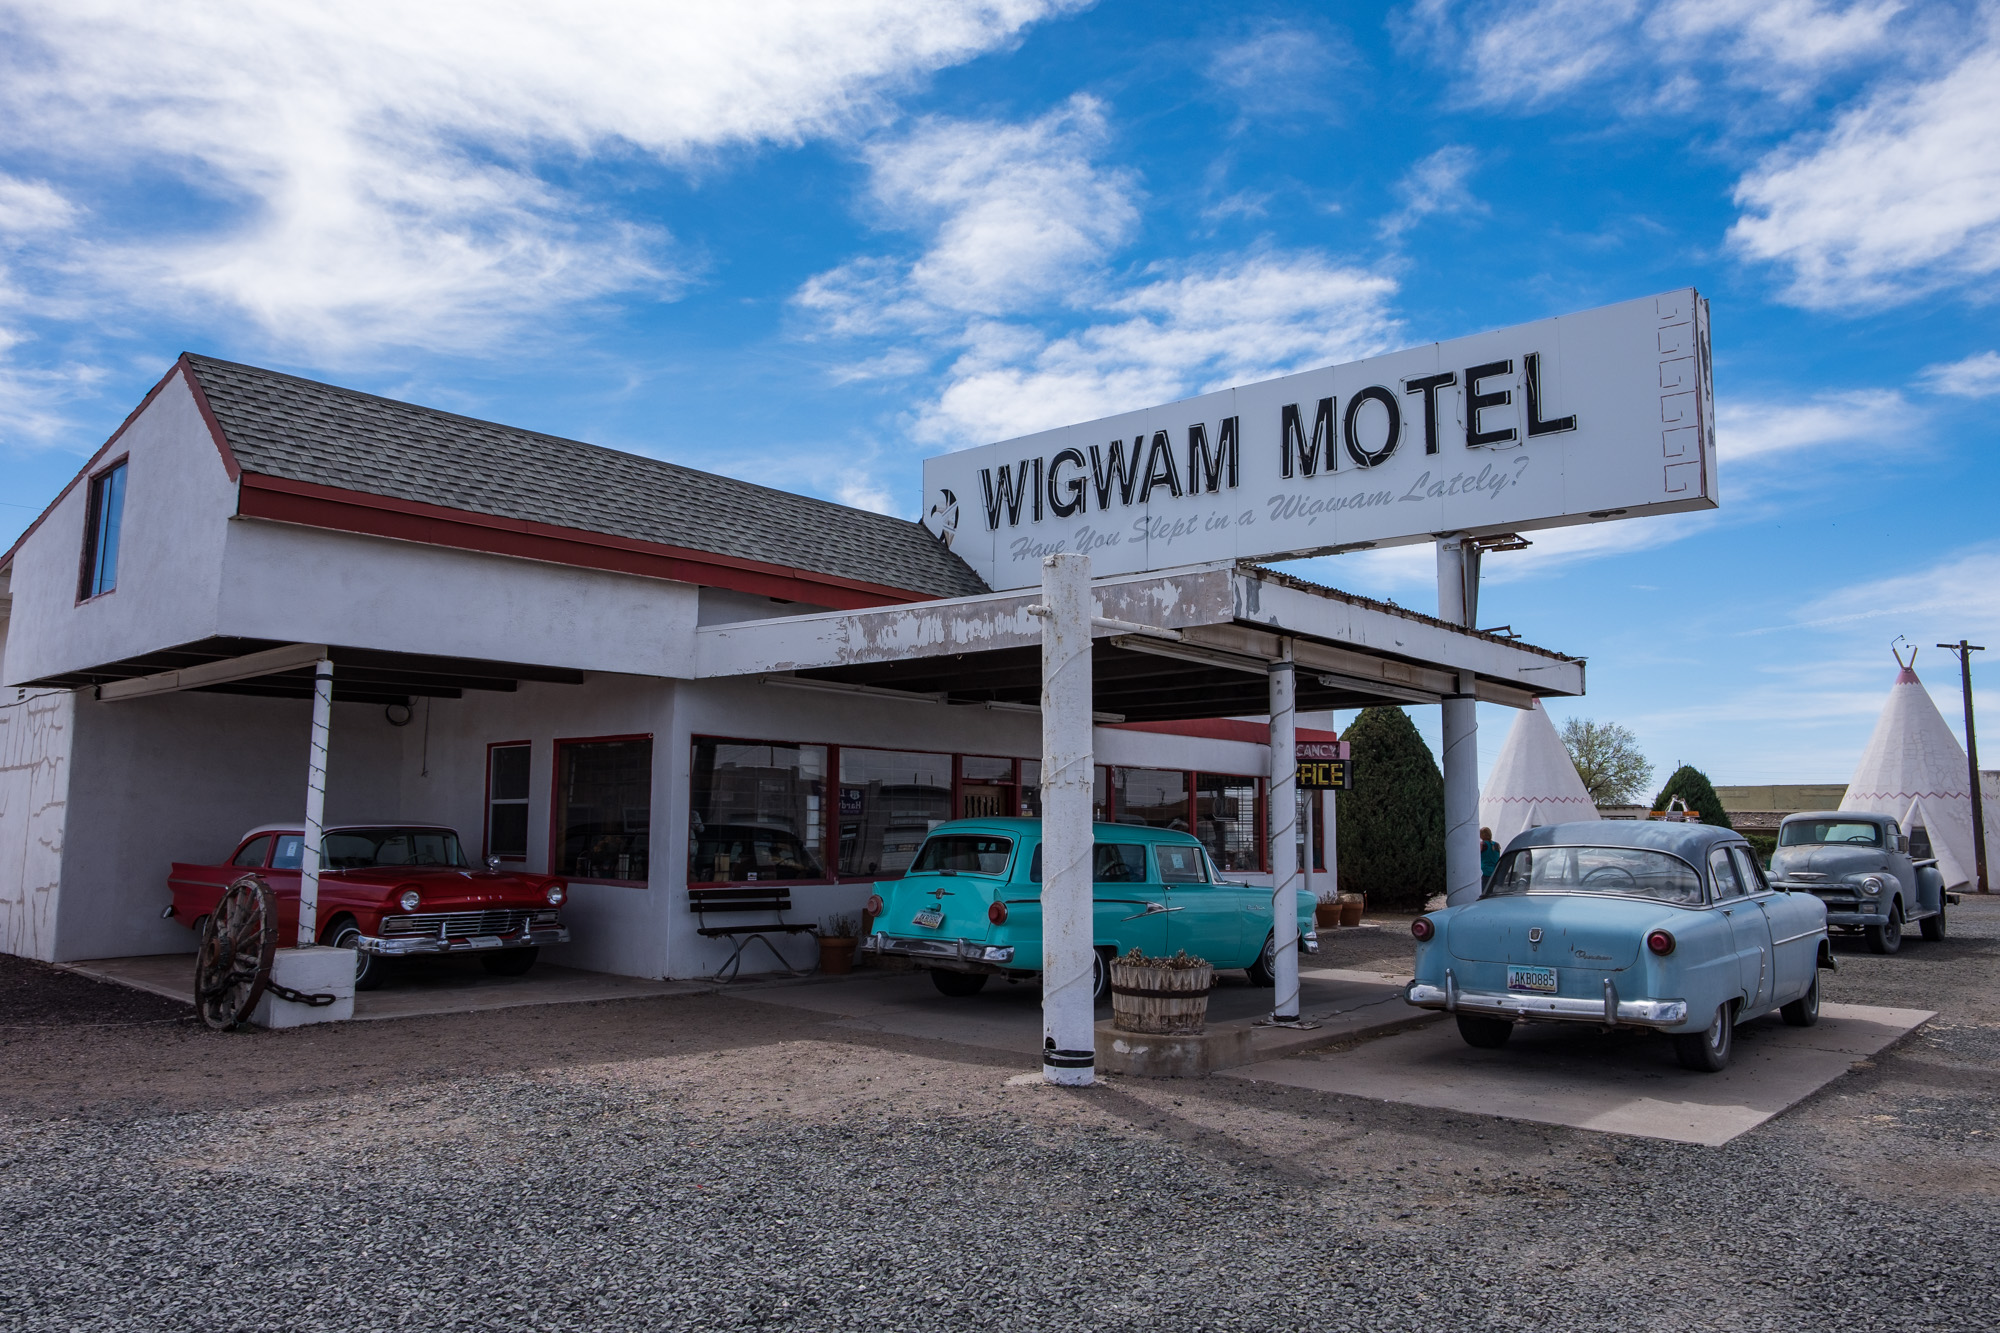 The Wigwam Hotel is an historic sight along the old Route 66 highway.